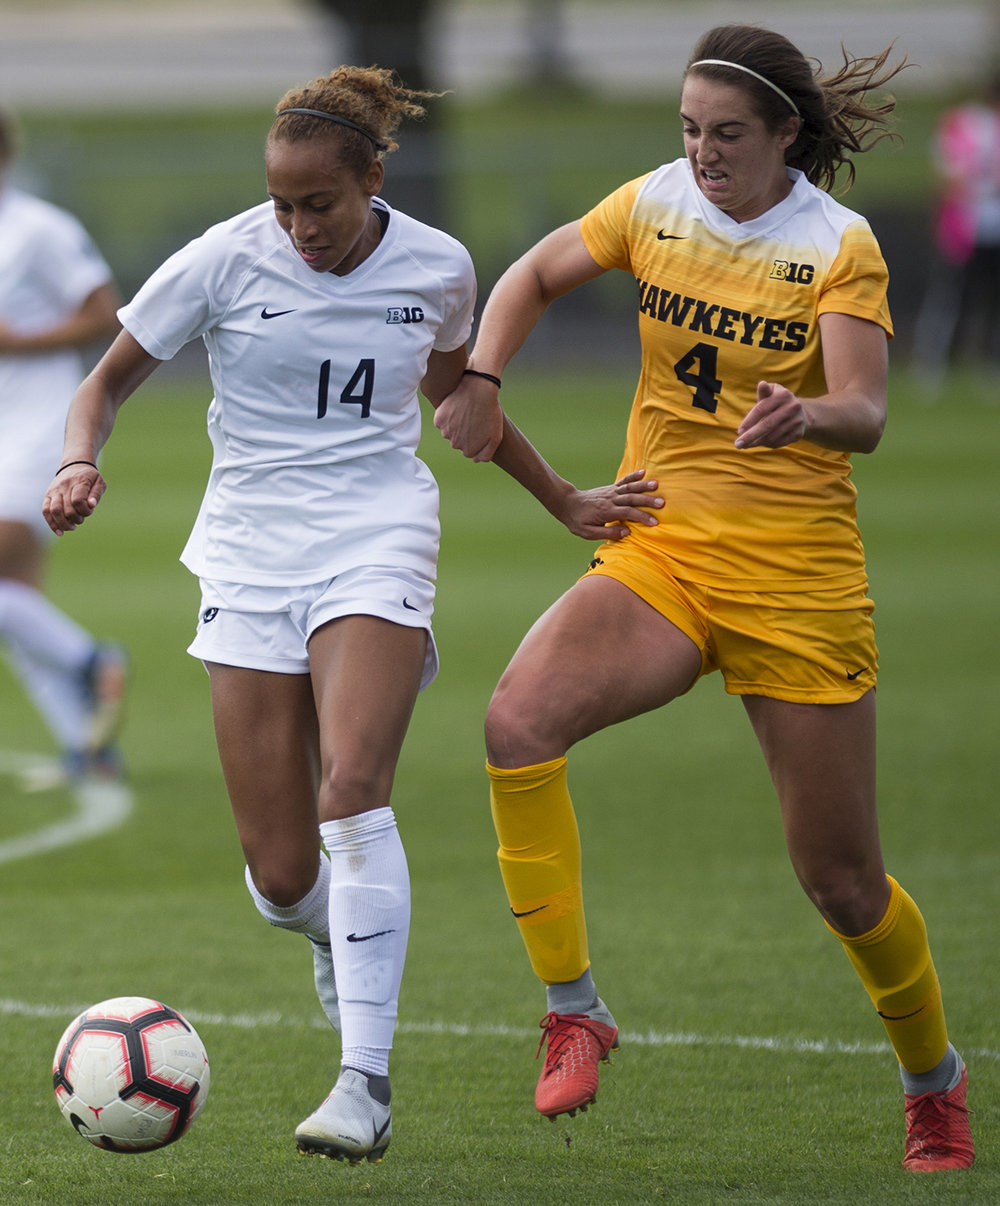 Defender Ellie Jean (14) and forward Kaleigh Haus (4) fight for dominance over the ball during the Penn State v. Iowa women's soccer match at Jeffrey Field on Sunday, Sept. 30, 2018. Penn State defeated Iowa 2-0.